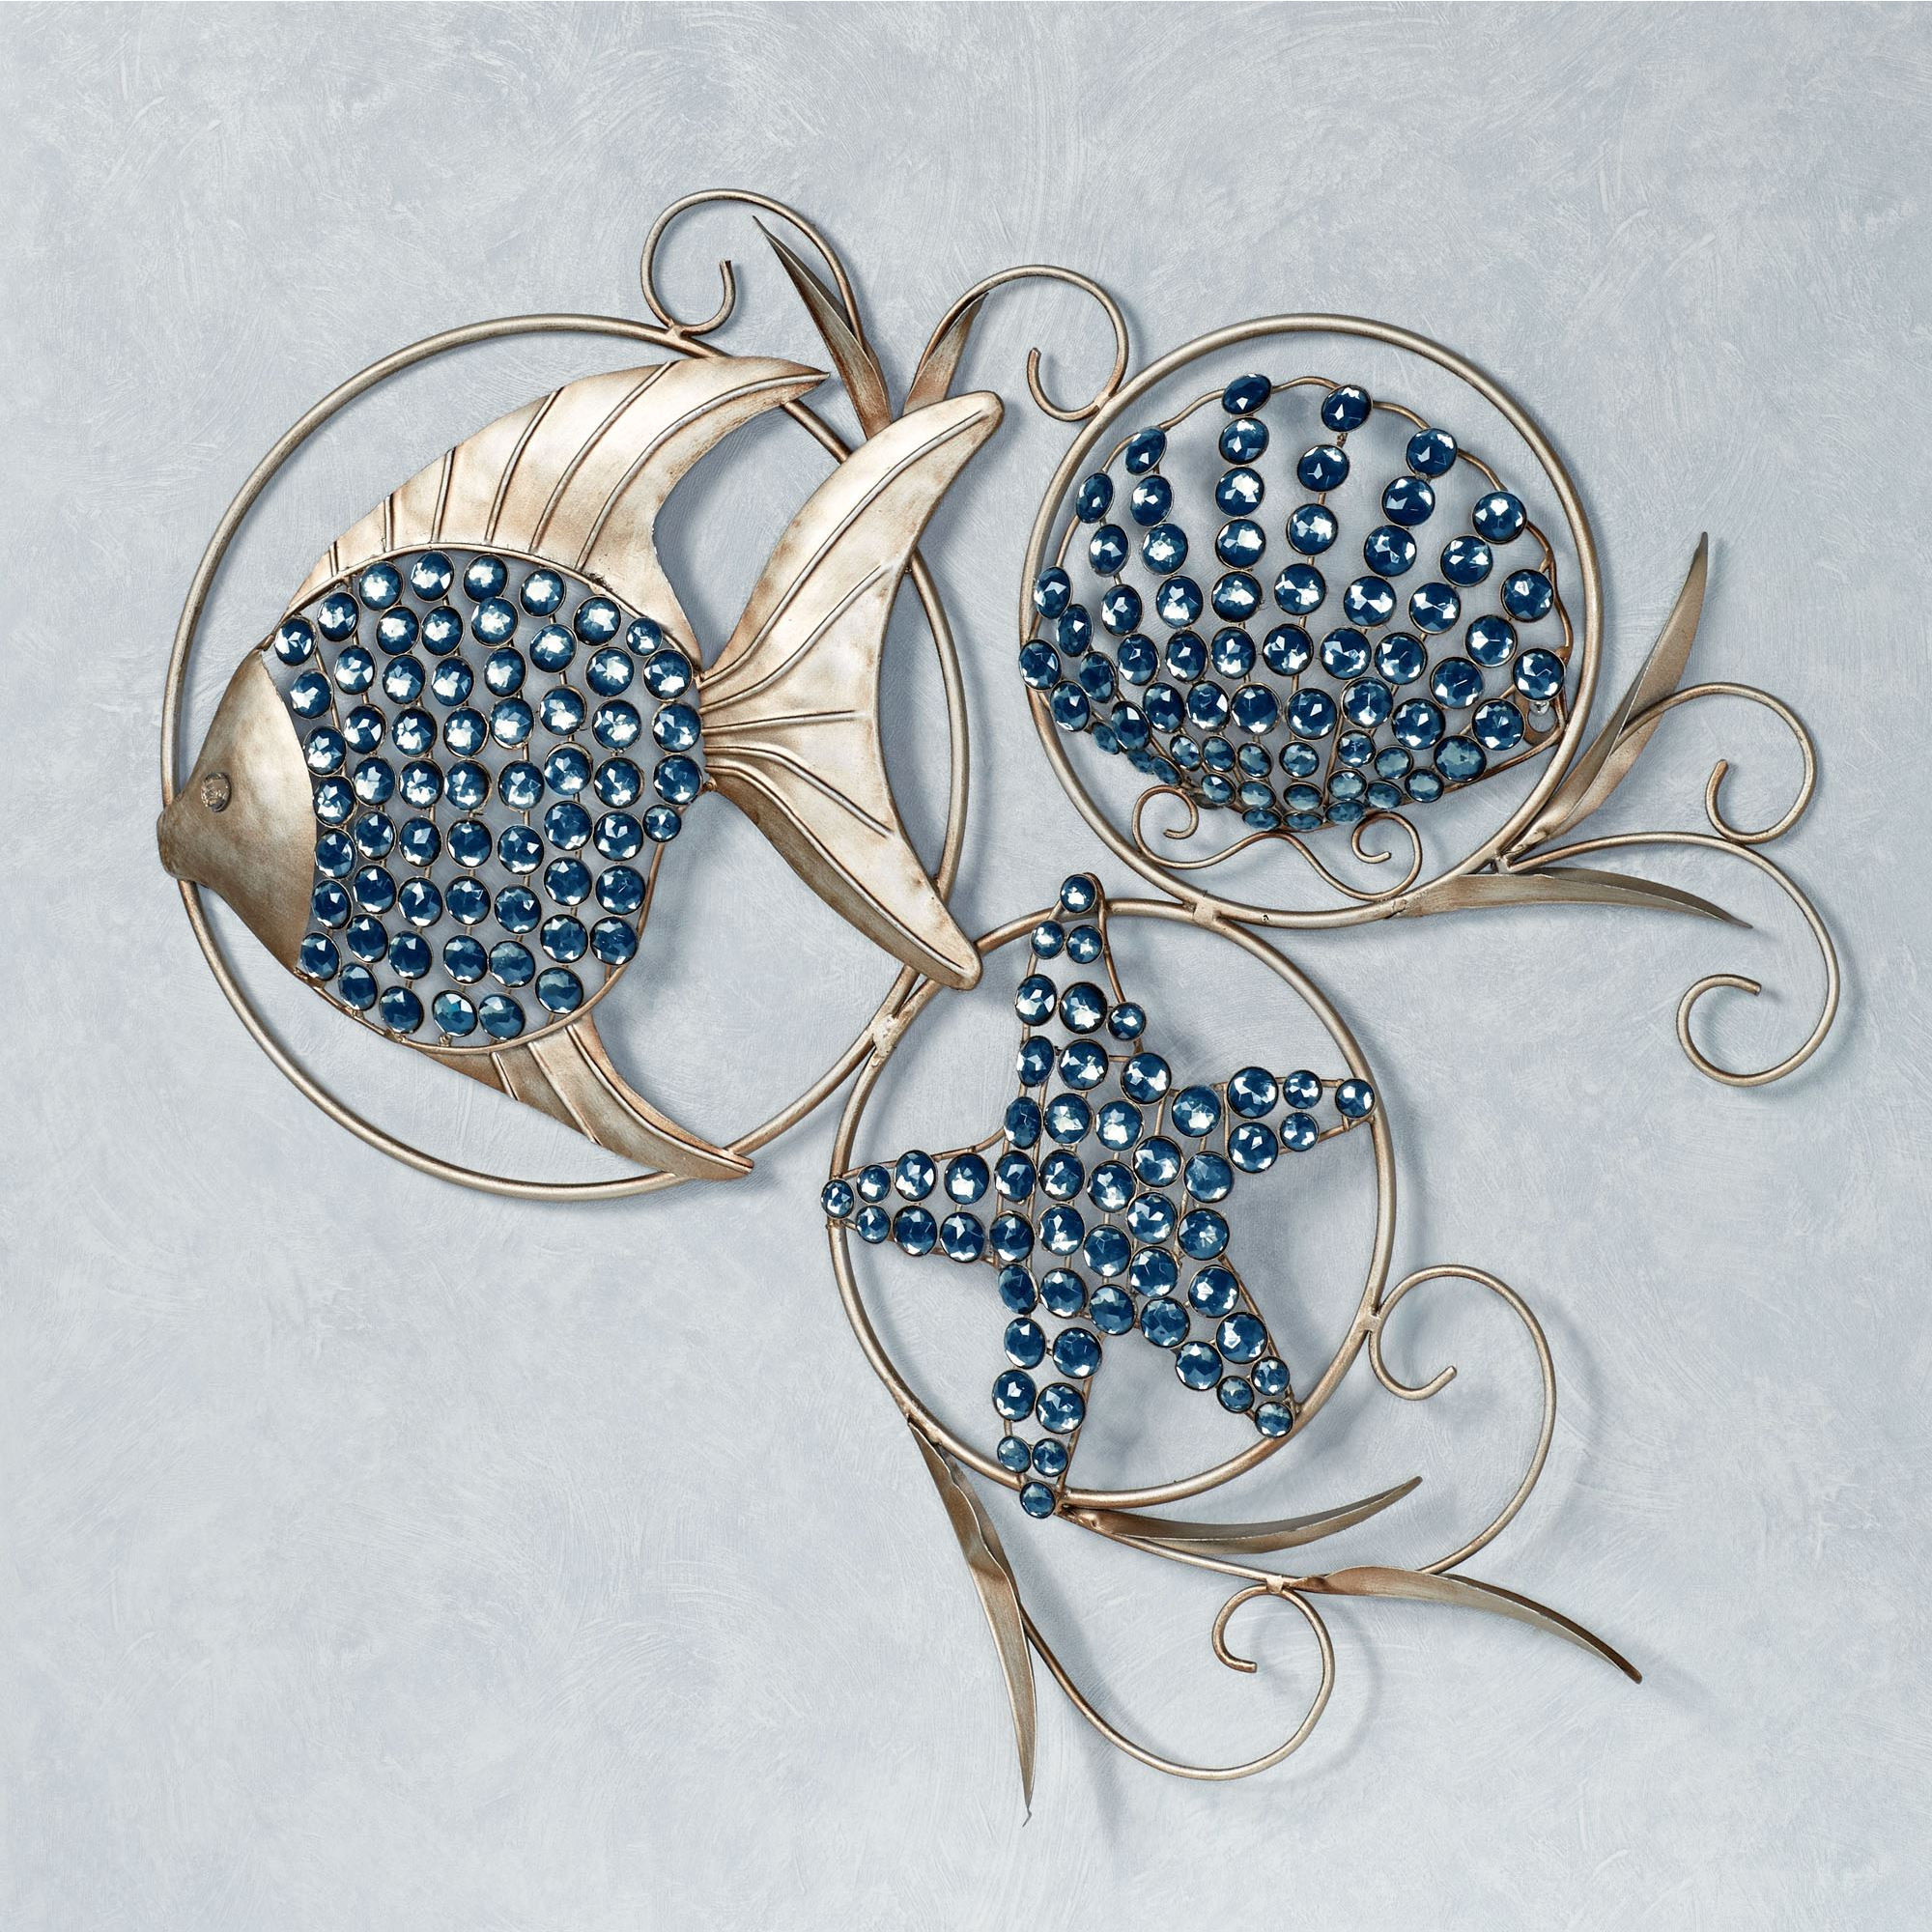 Tree Shell Leaves Sculpture Wall Decor Throughout Favorite Decoration Ornamental Wall Art Metal Artwork For Living Room Metal (View 12 of 20)